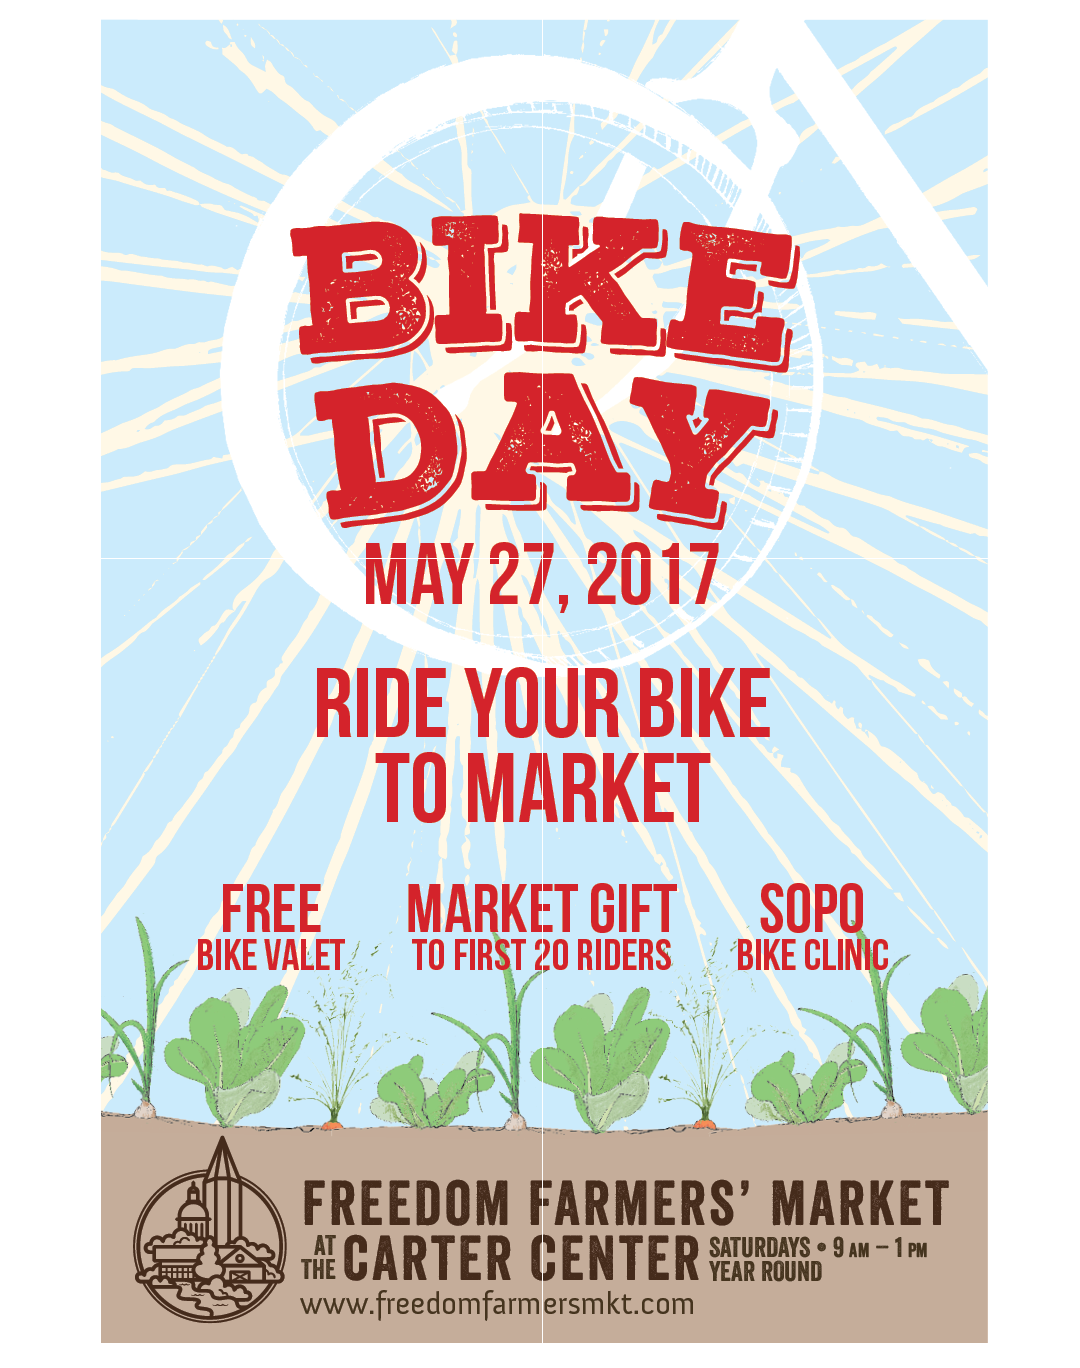 ffm-bikeday-2017-01.png